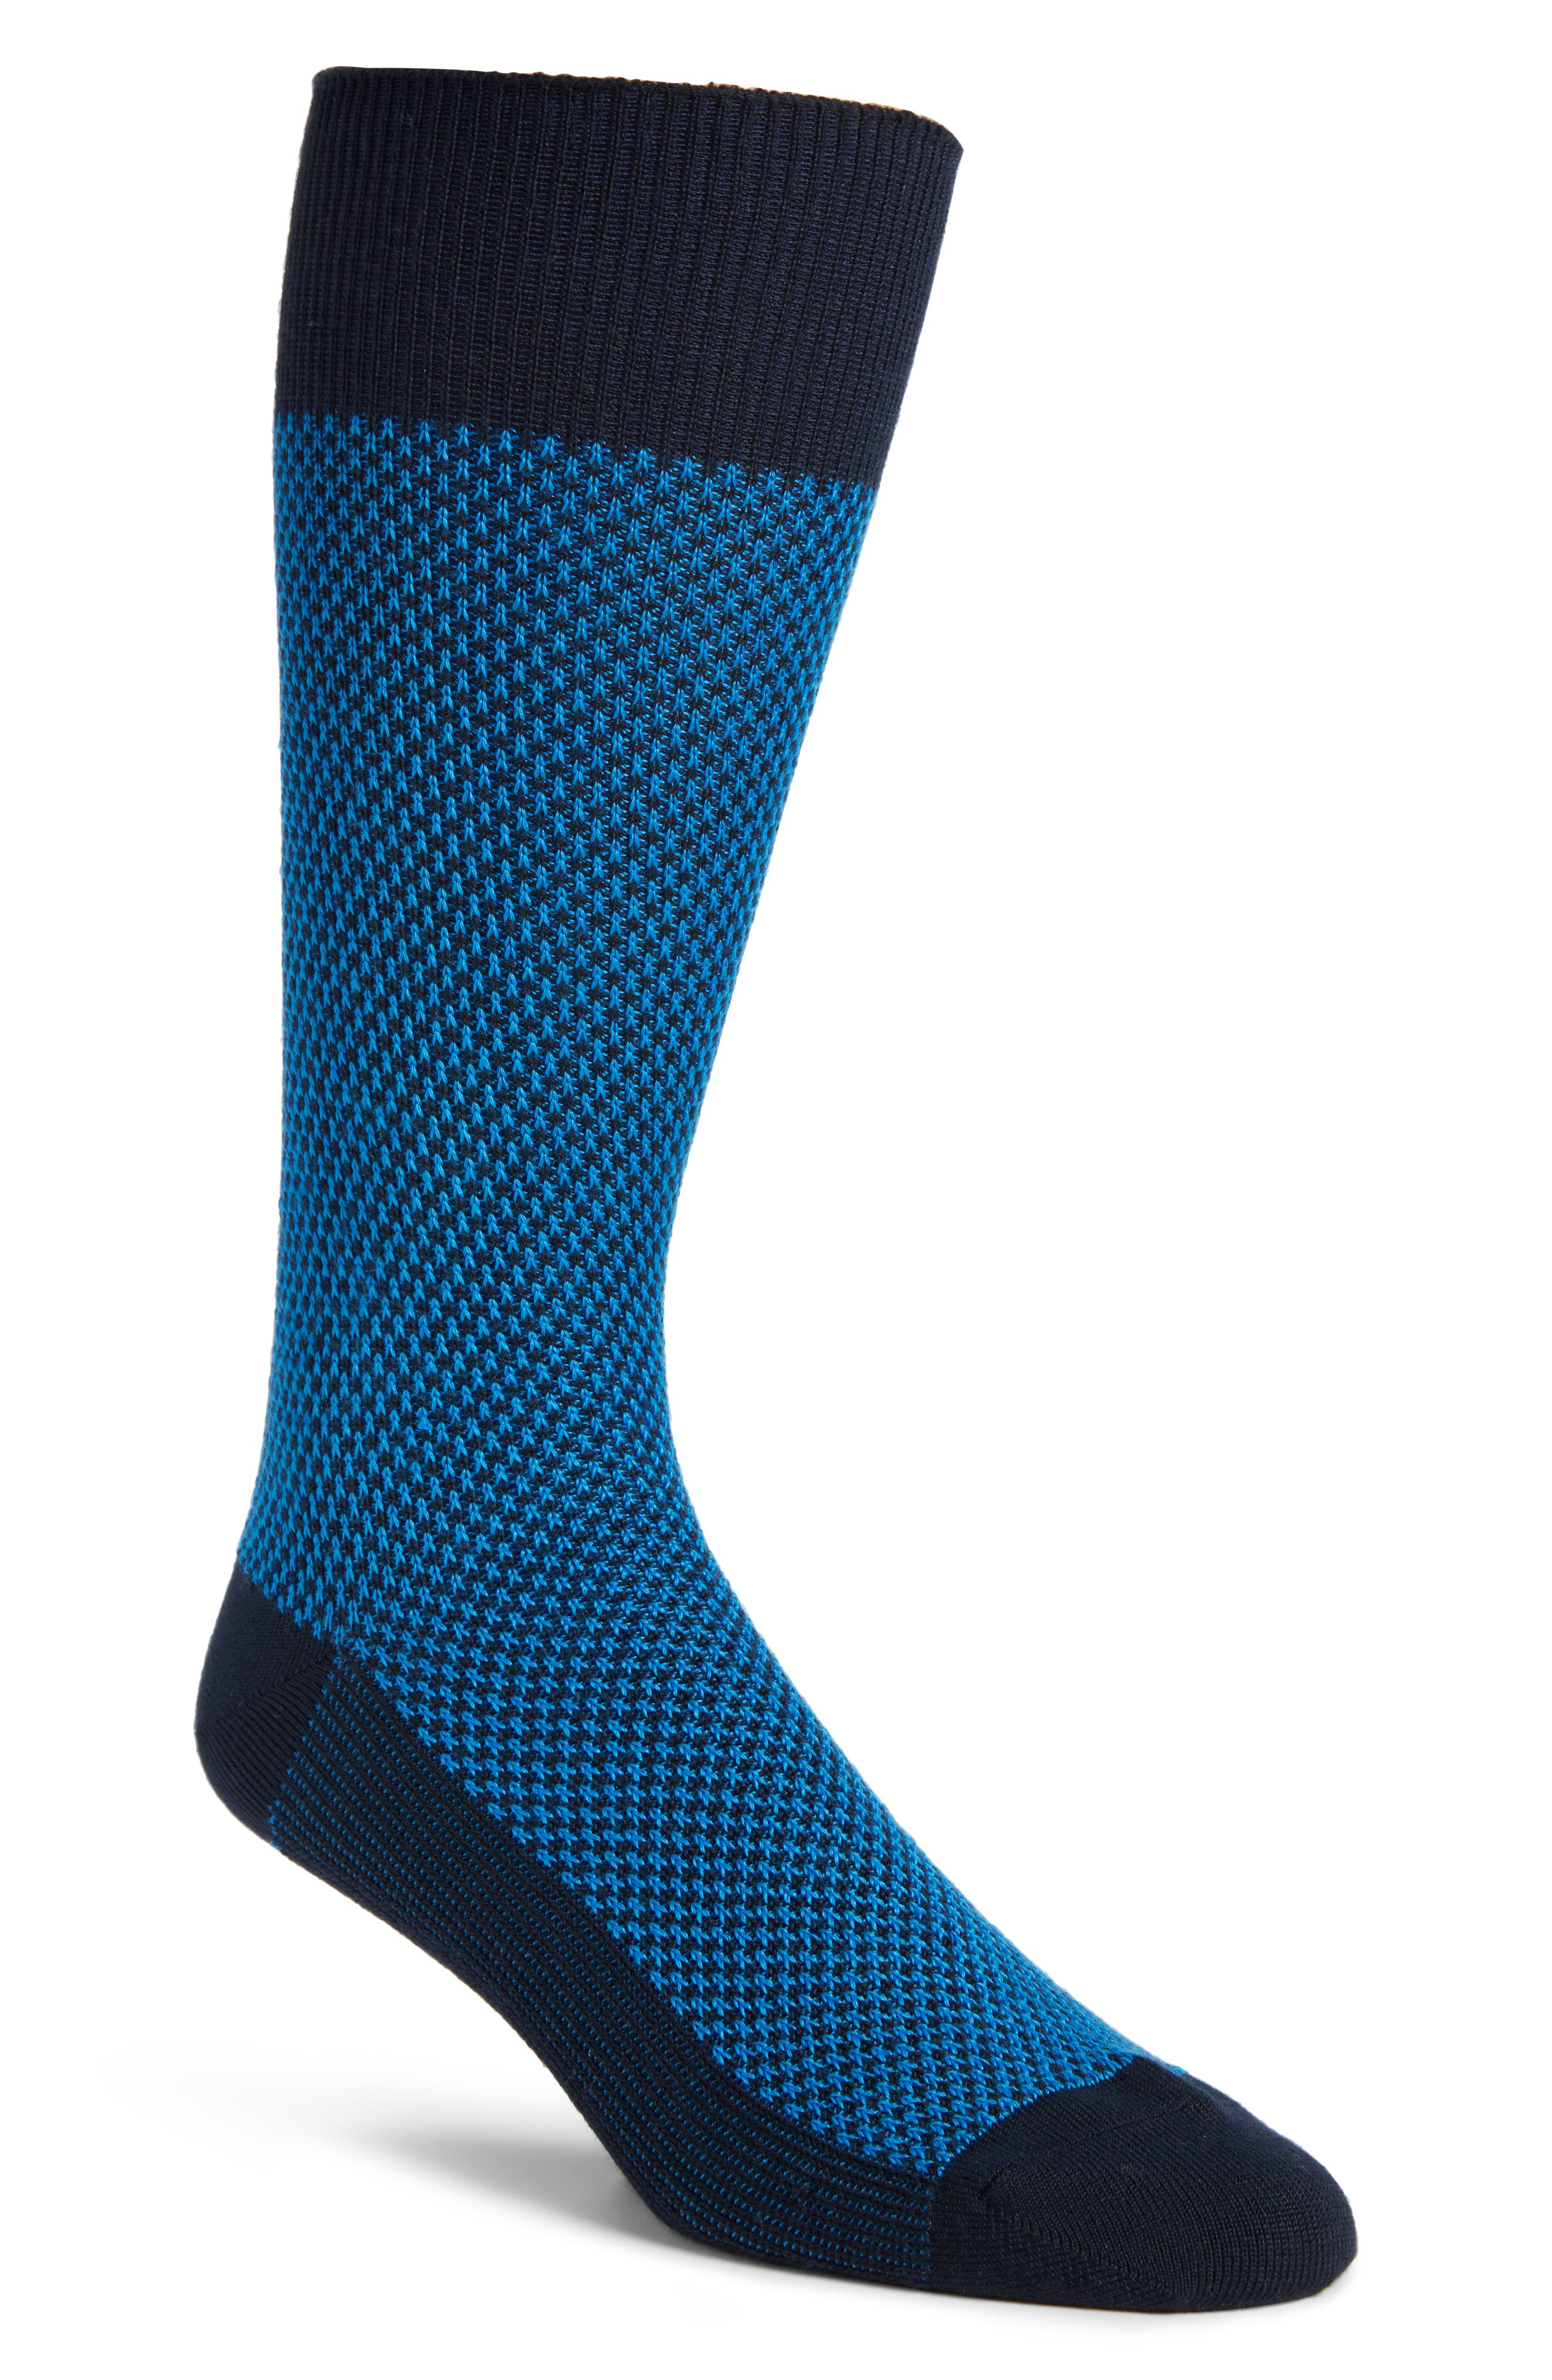 Ultra Soft Textured Socks,                         Main,                         color, NAVY/ BLUE